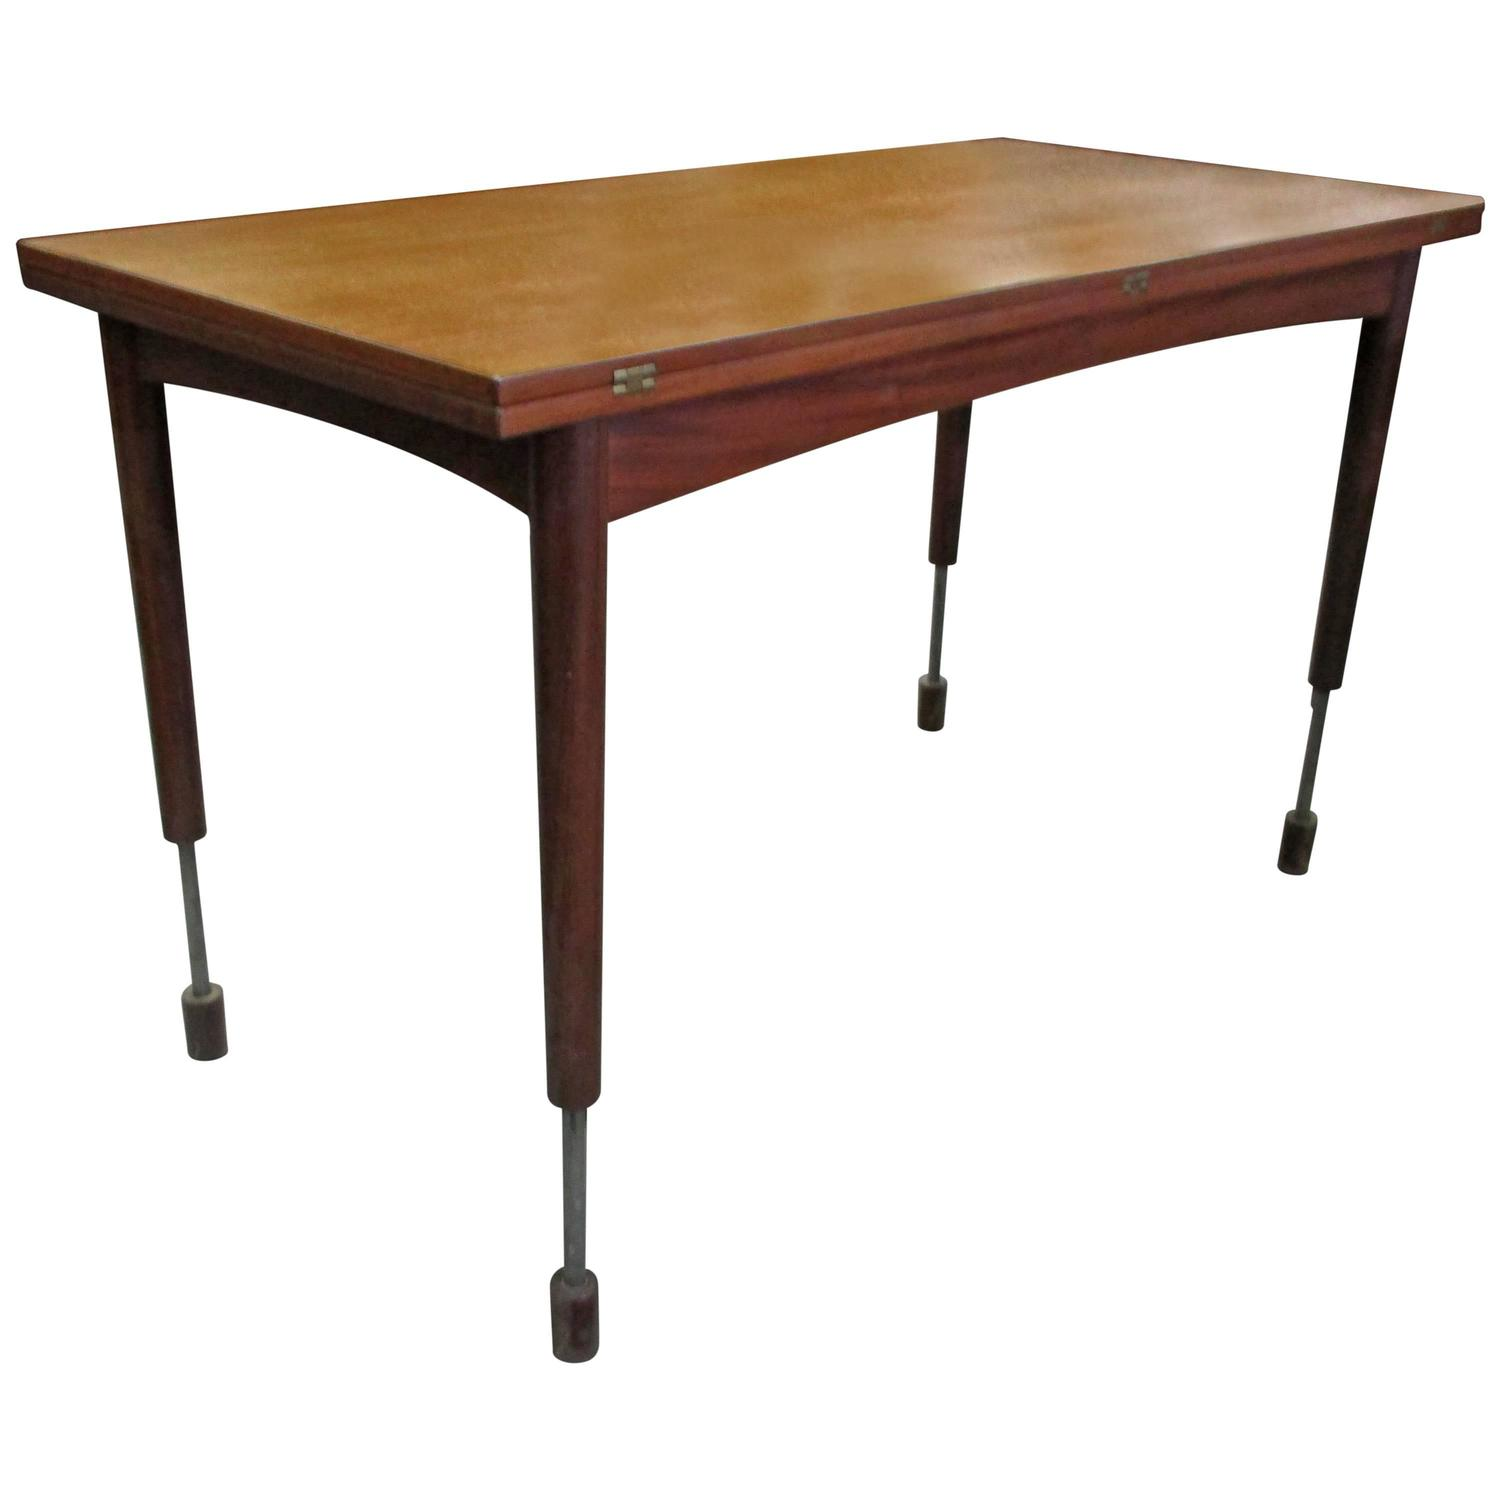 Hans Olsen Tables 11 For Sale at 1stdibs